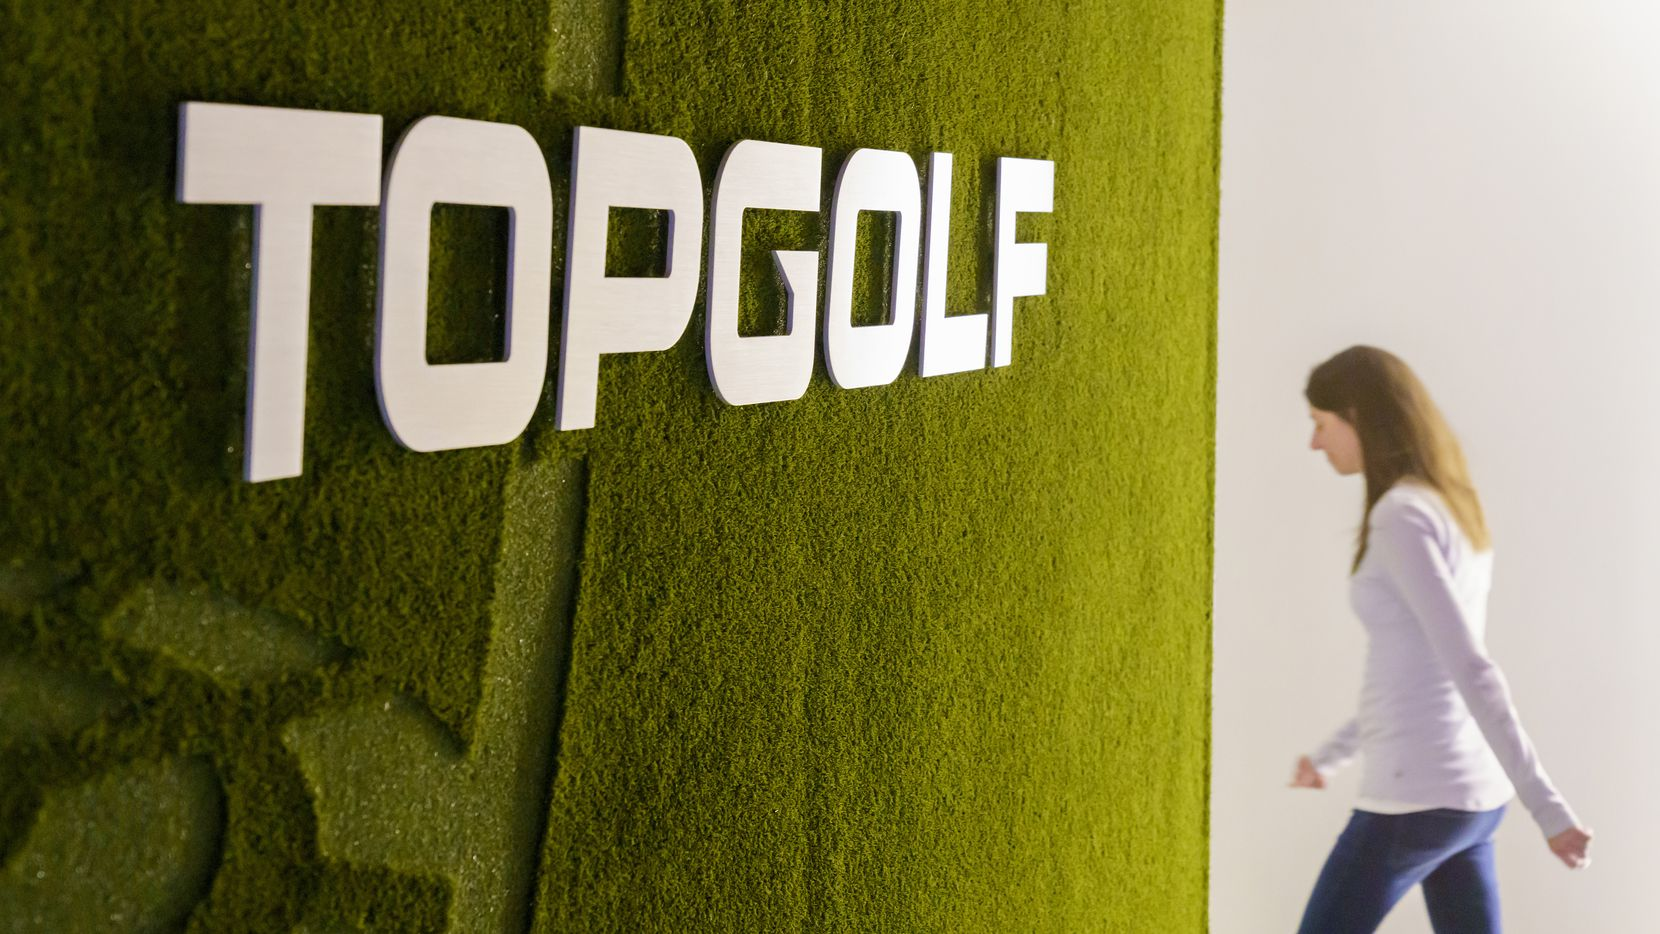 A wall covered in artificial turf and the company logo greets visitors in the lobby at Topgolf headquarters on Monday, Nov. 11, 2019, in Dallas. (Smiley N. Pool/The Dallas Morning News)